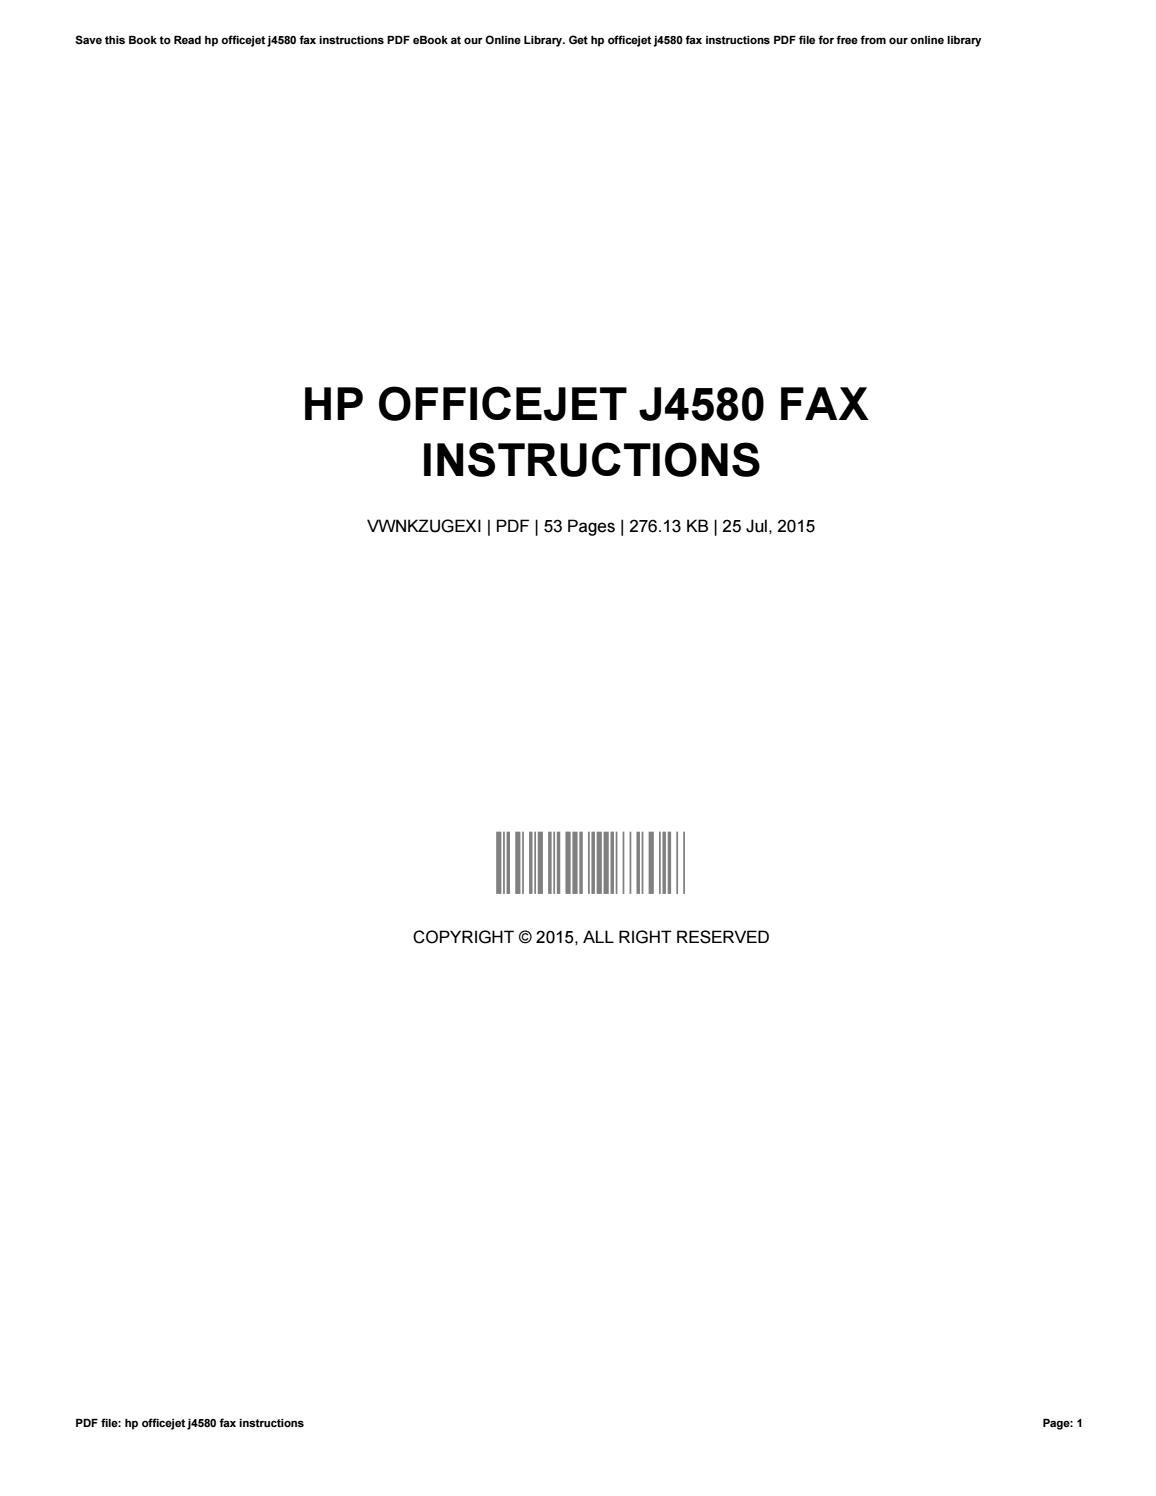 hp officejet j4580 instruction manual